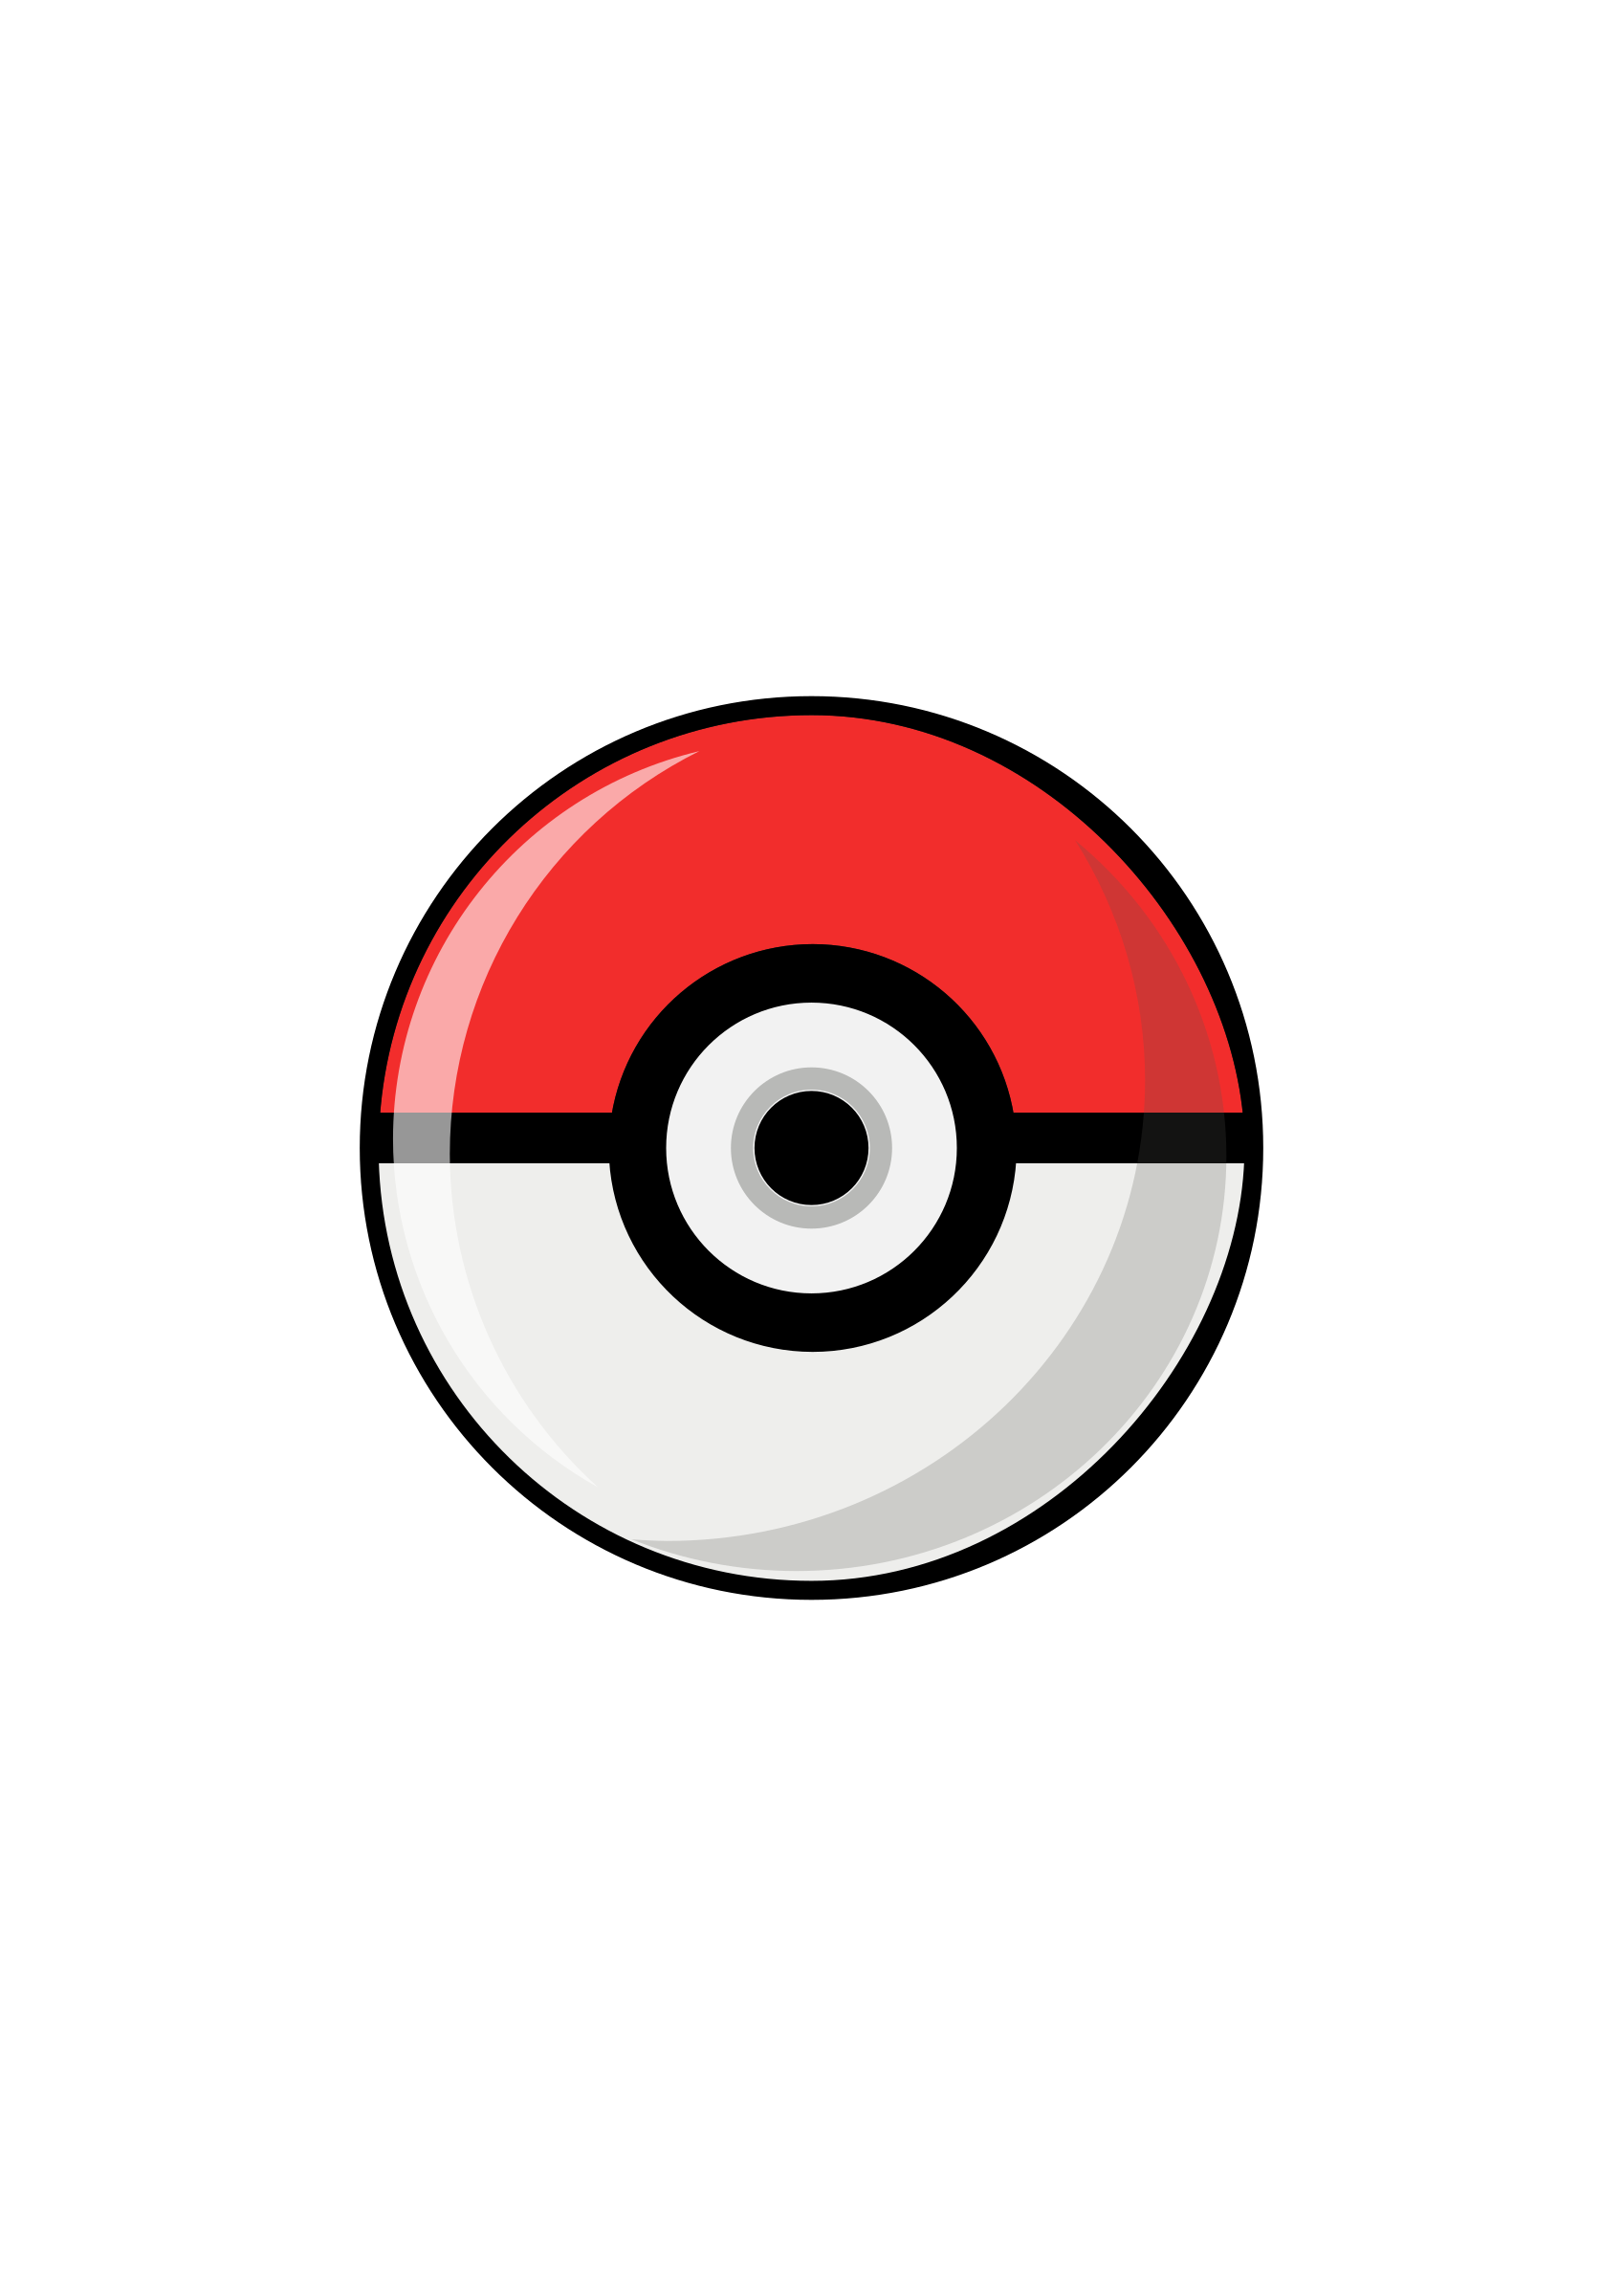 Pokeball clipart outline. Remix metal feel icons